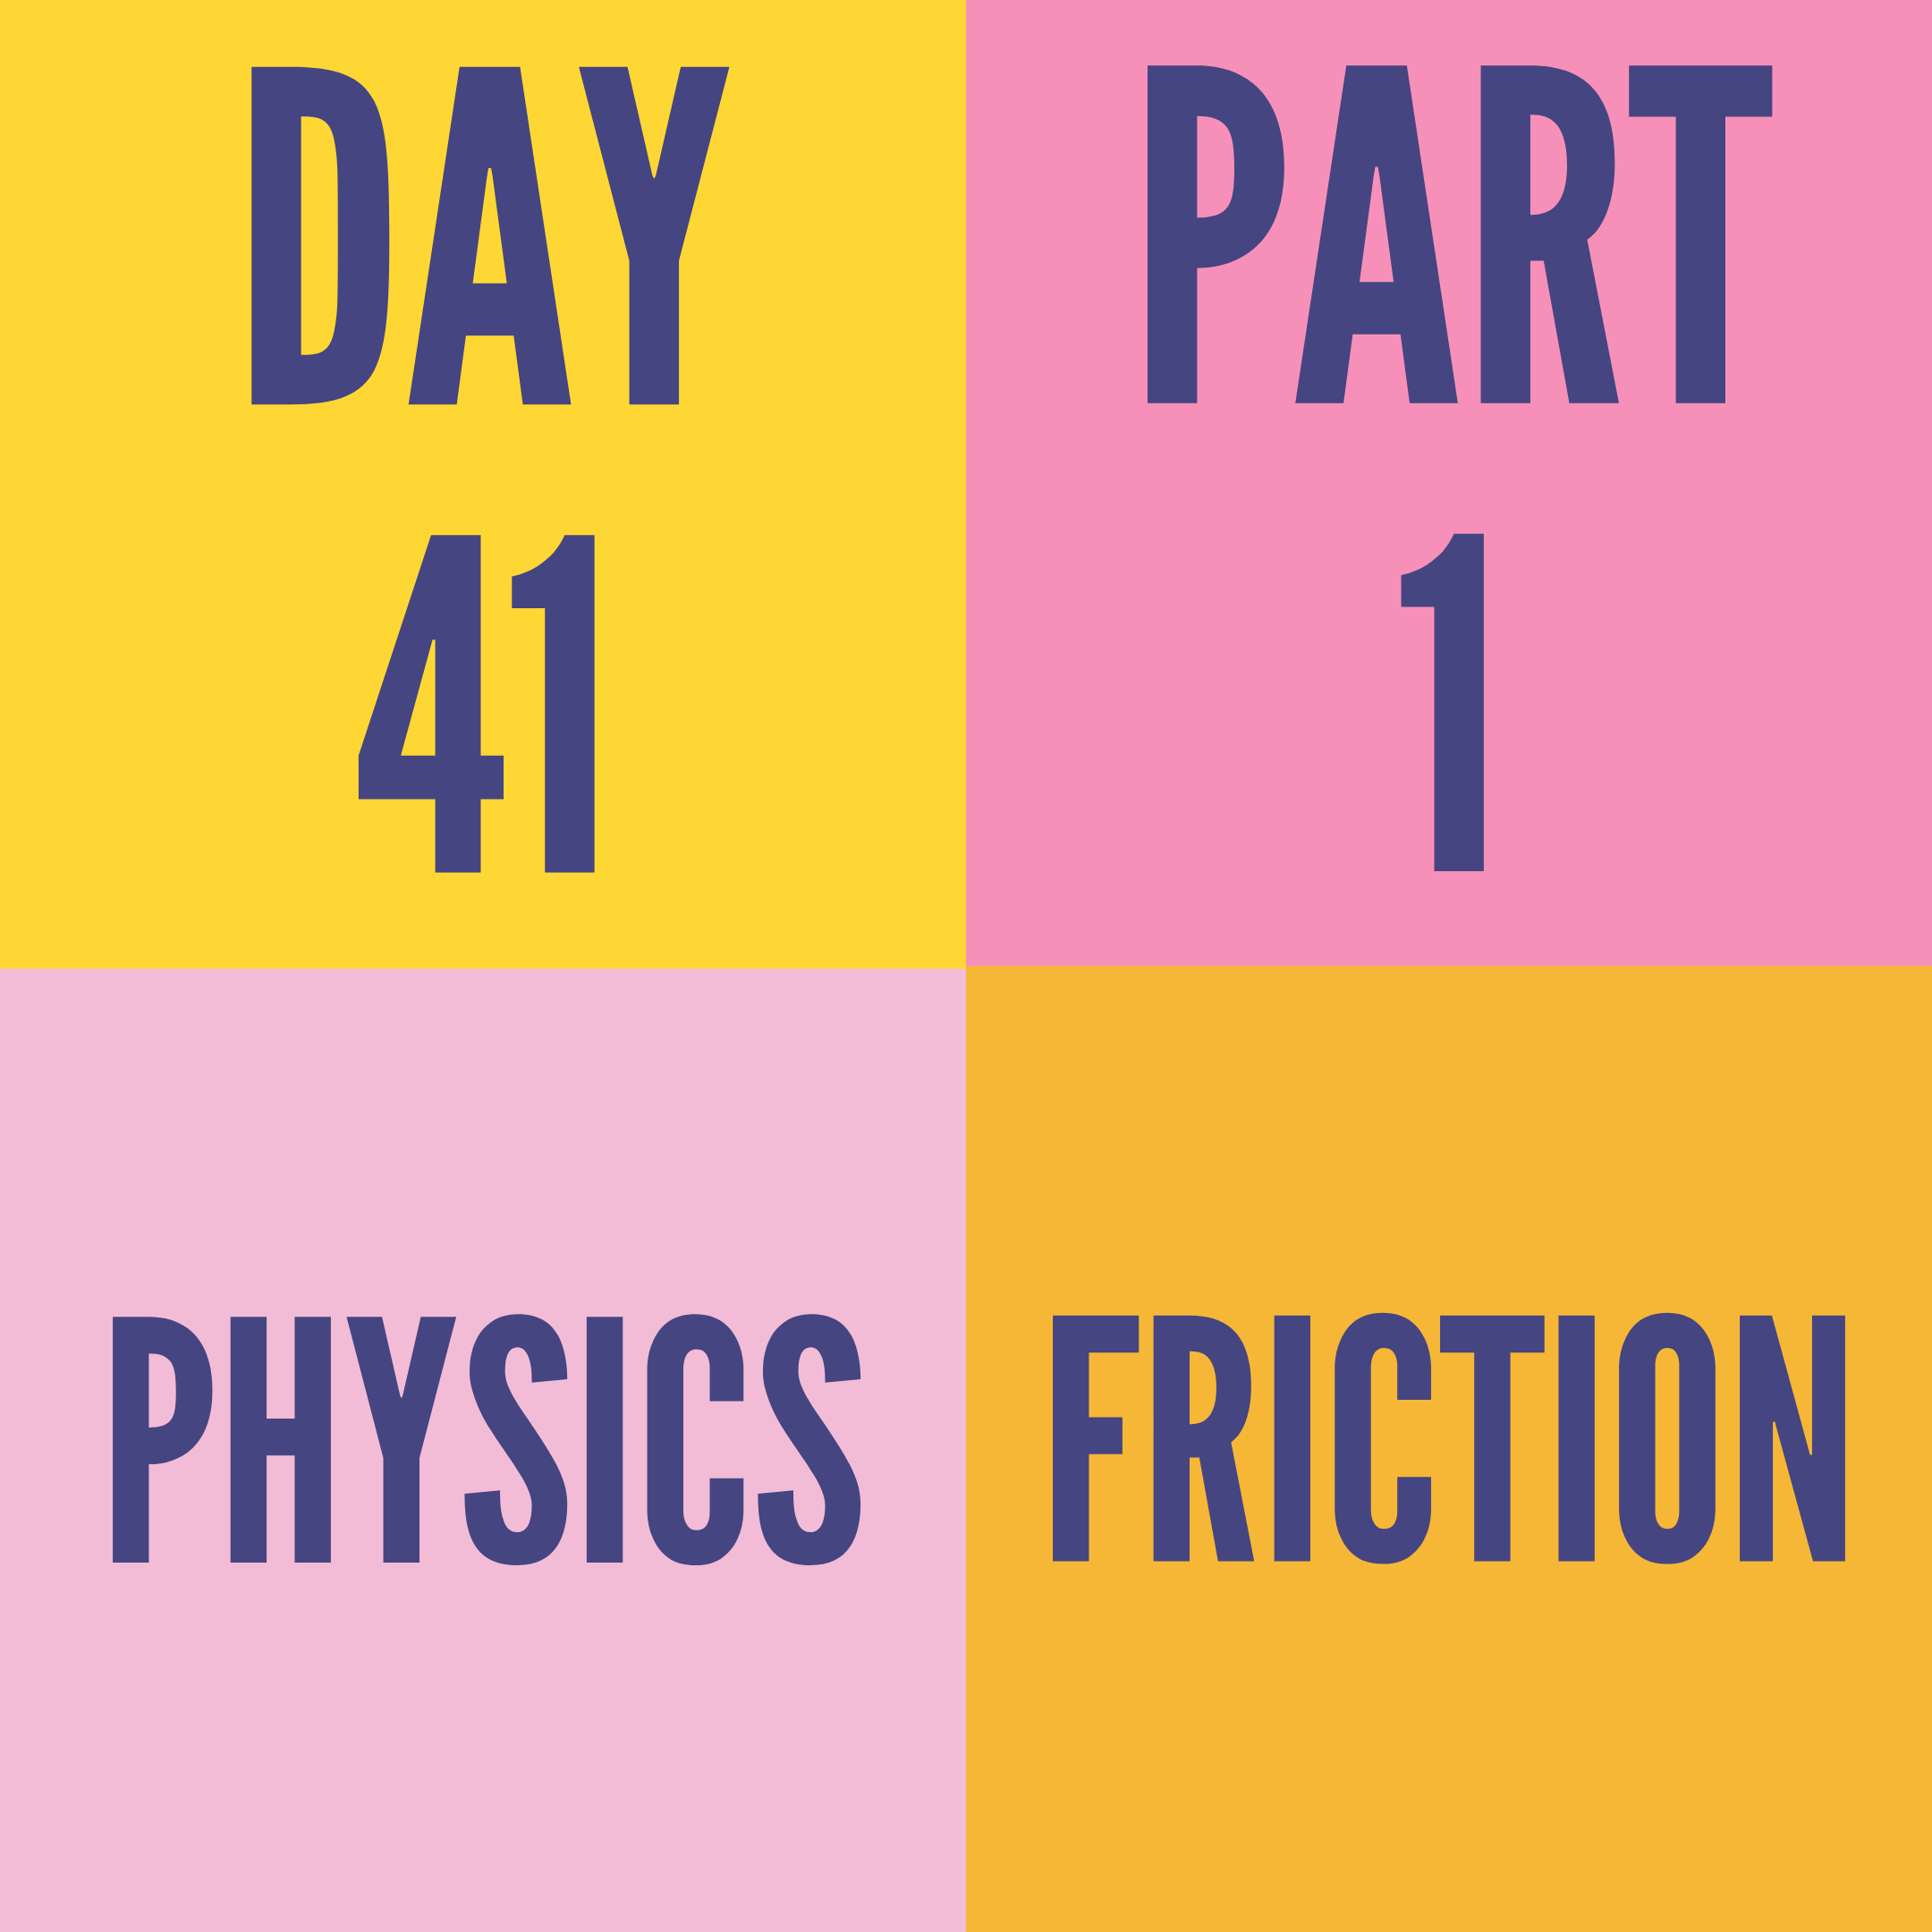 DAY-41 PART-1 FRICTION